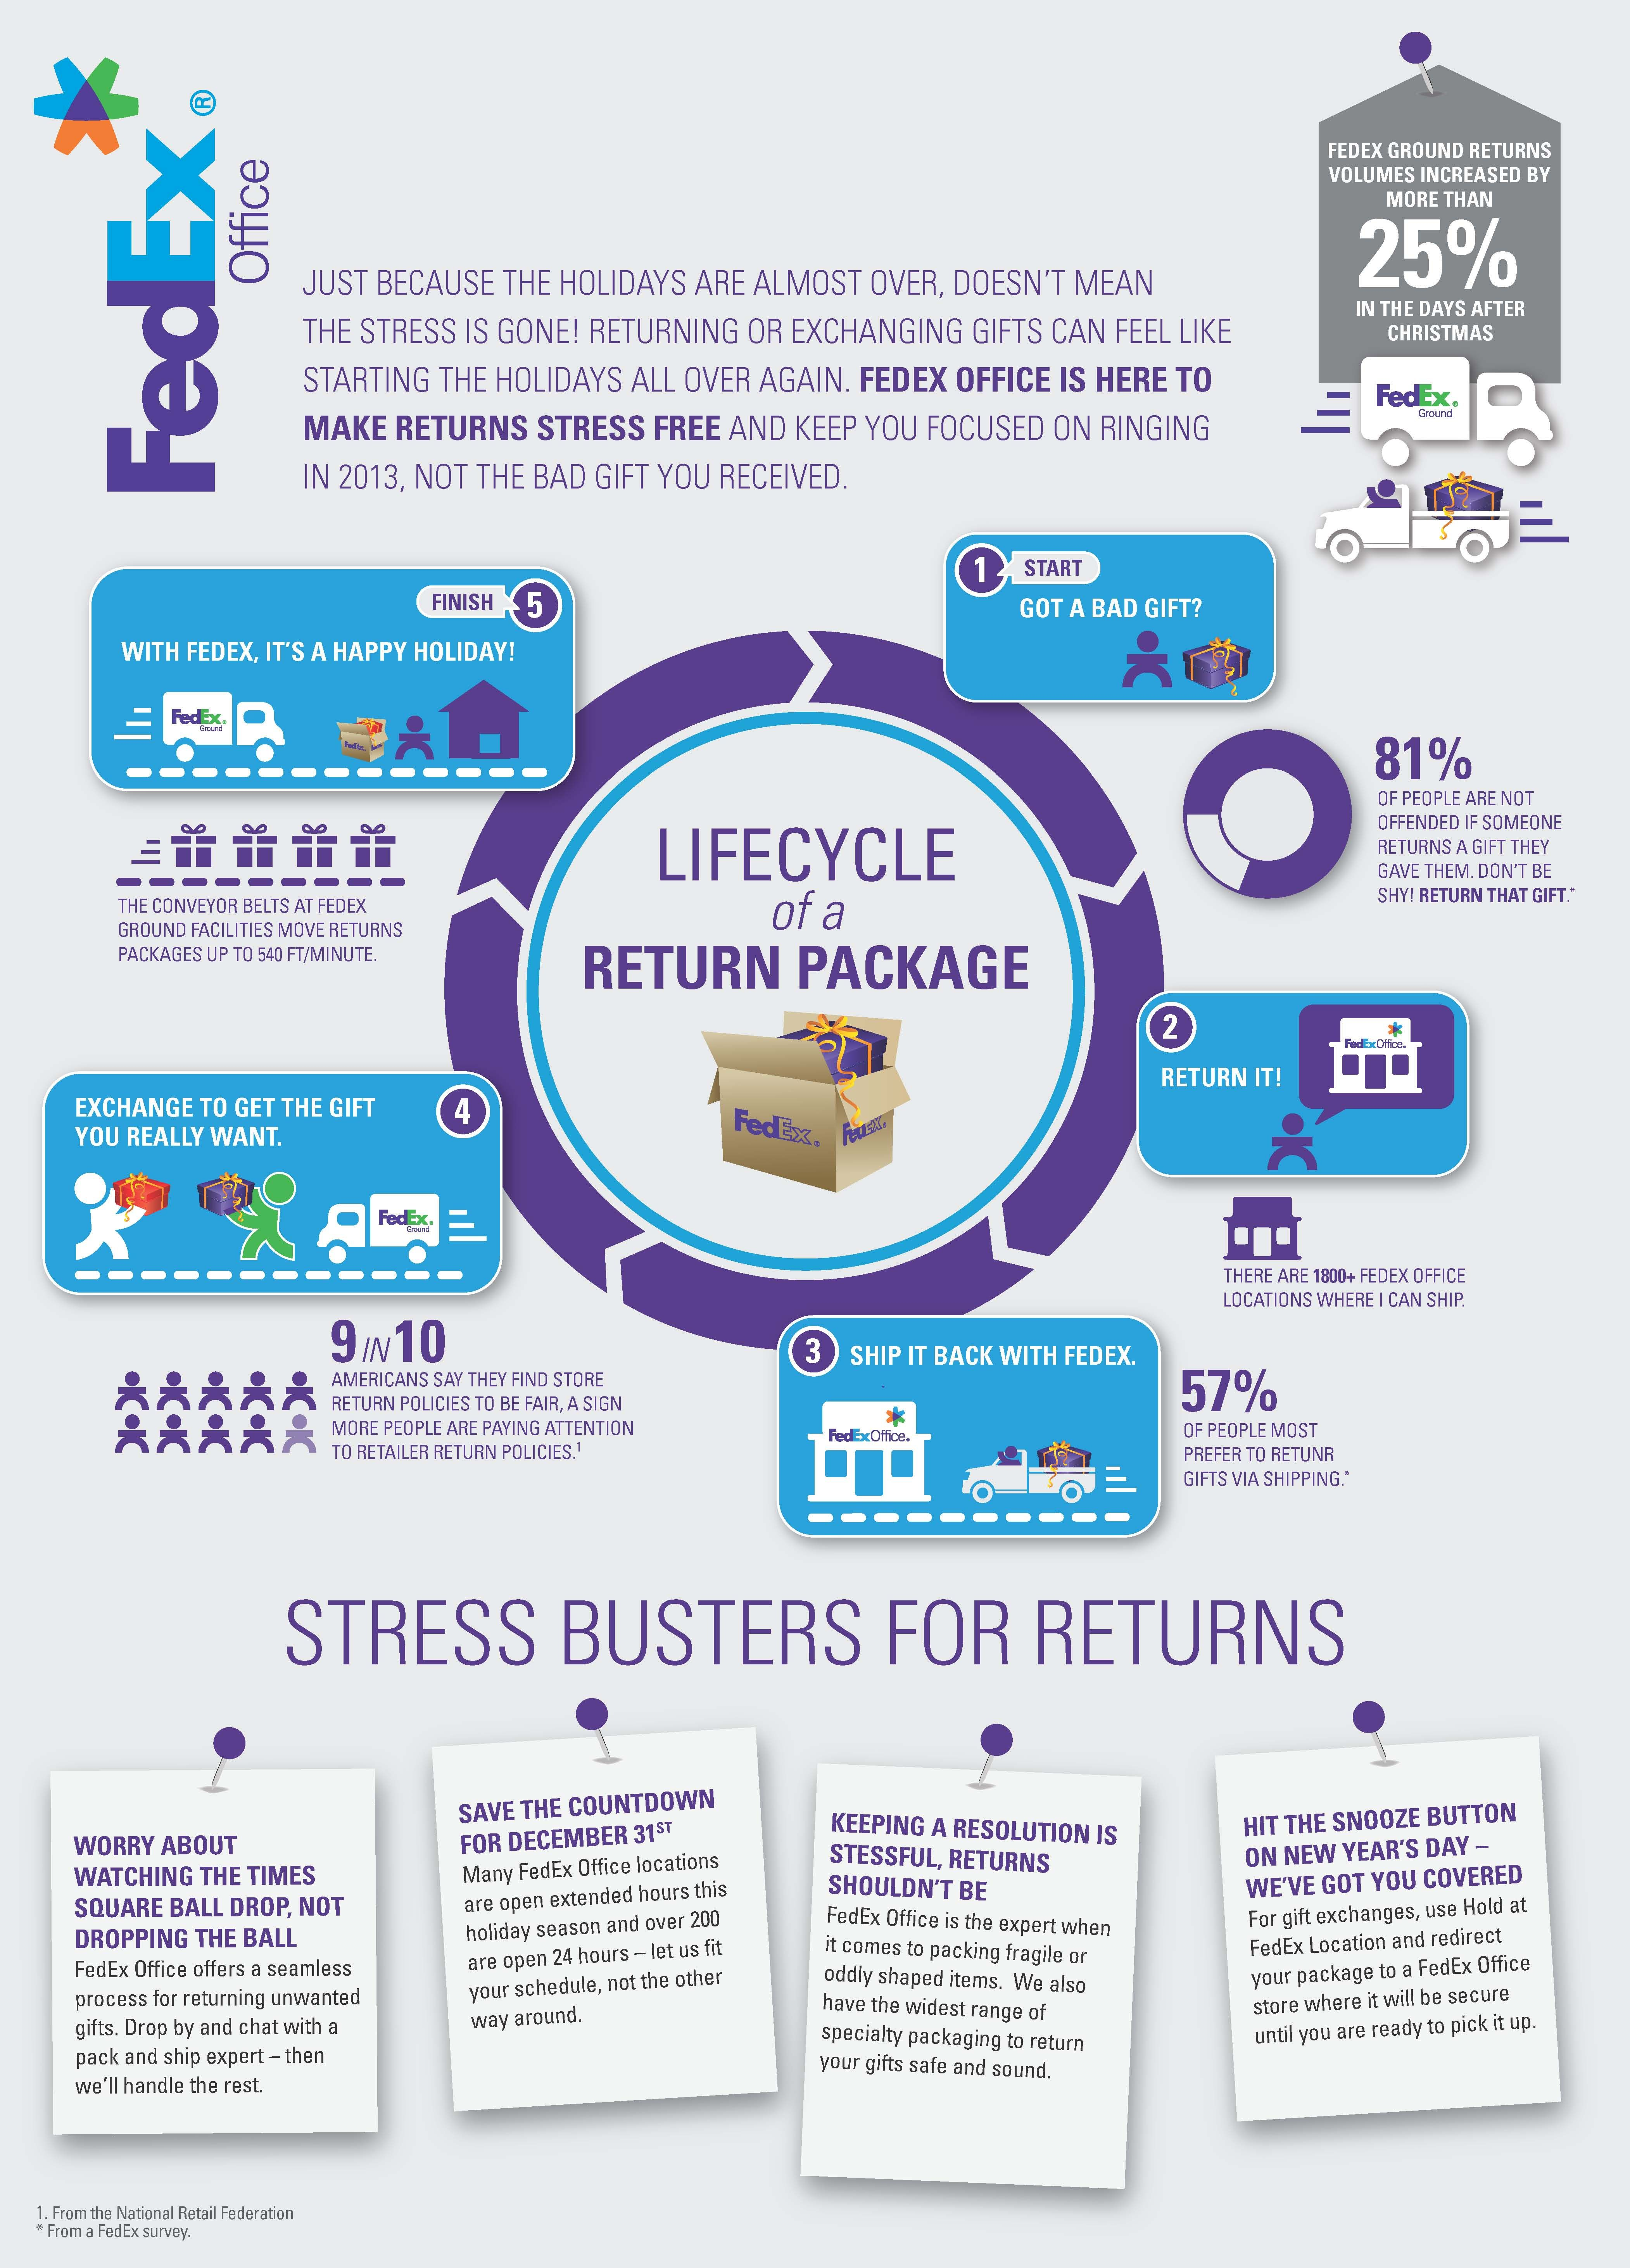 Lifecycle of a return package infographic from FedEx fice